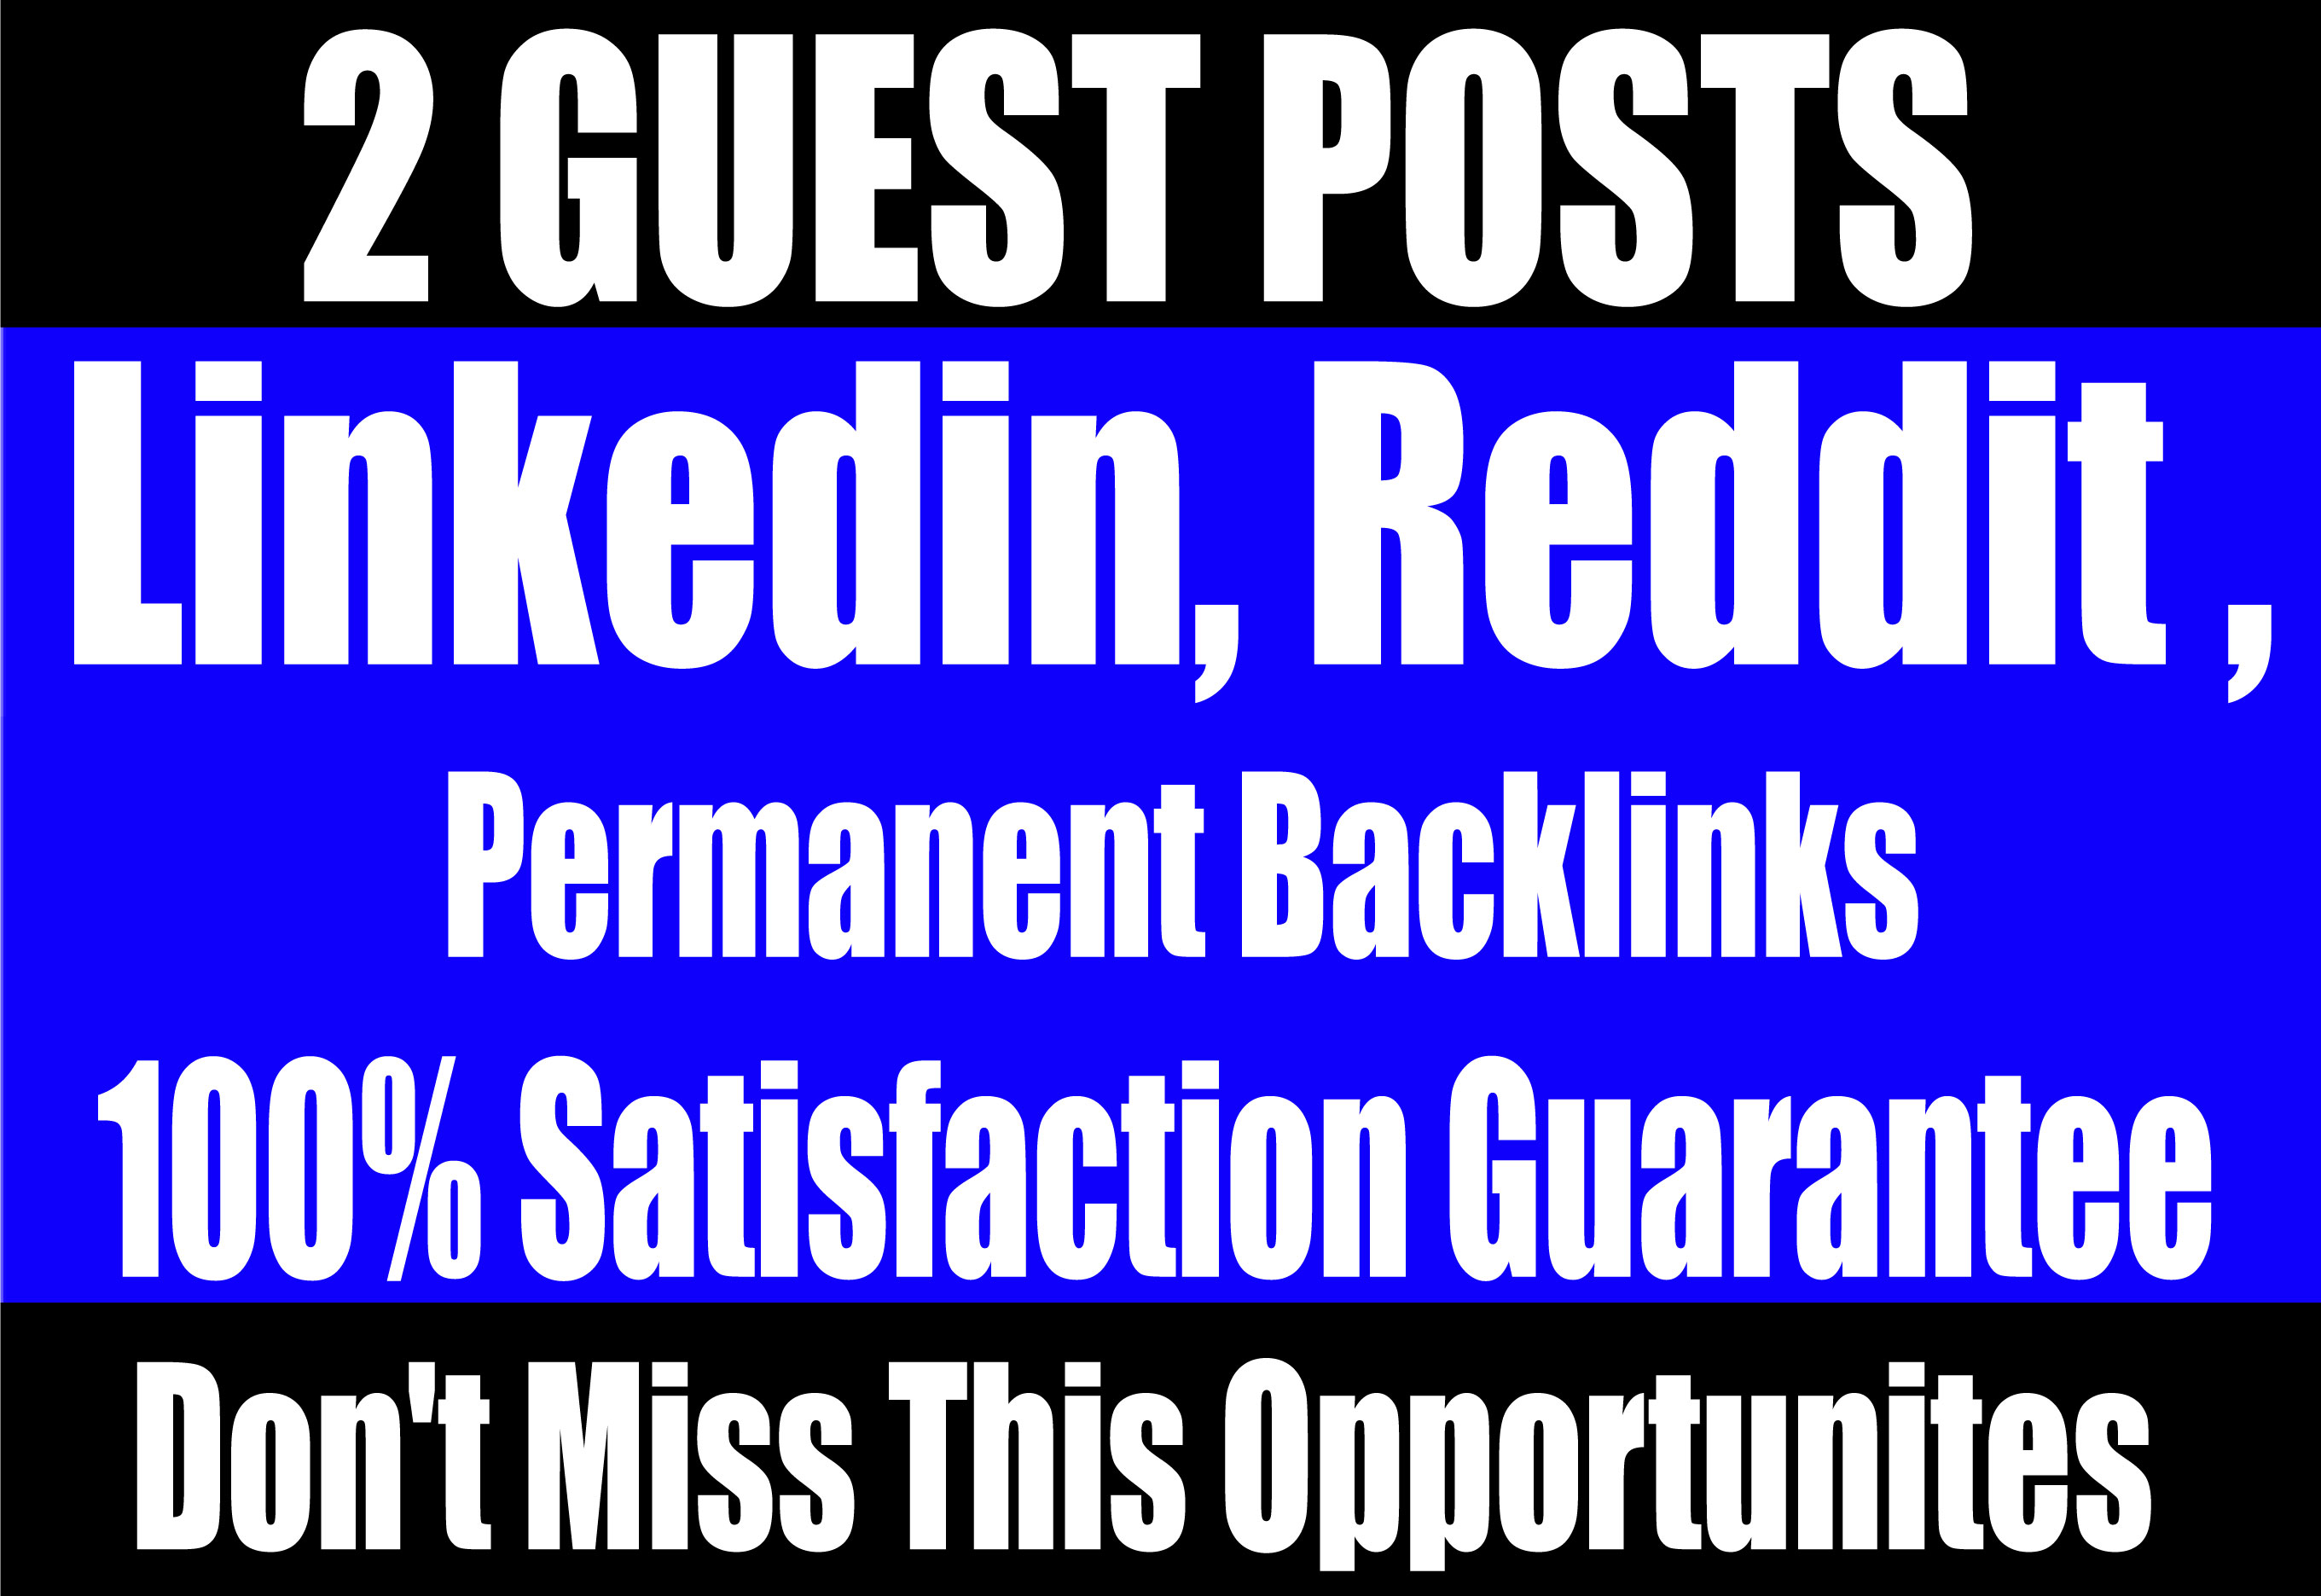 Publish 2 Guest Posts on Linkedin,  Reddit - High DA websites Boost your SEO Ranking